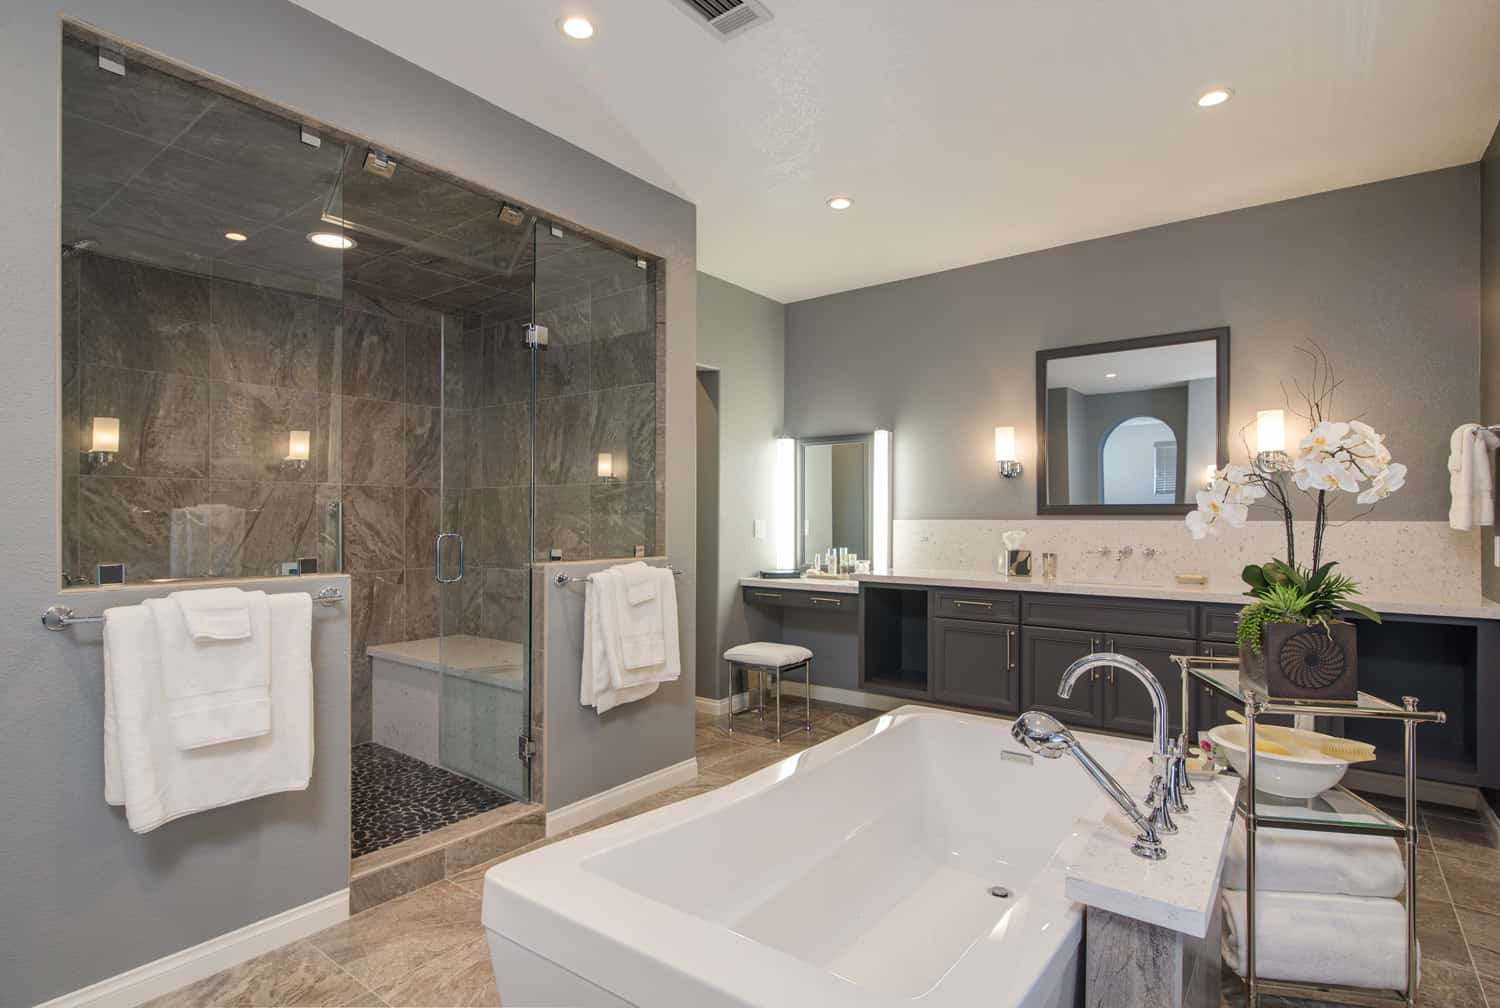 Remodel Designer San Diego Bathroom Remodeling And Design Remodel Works